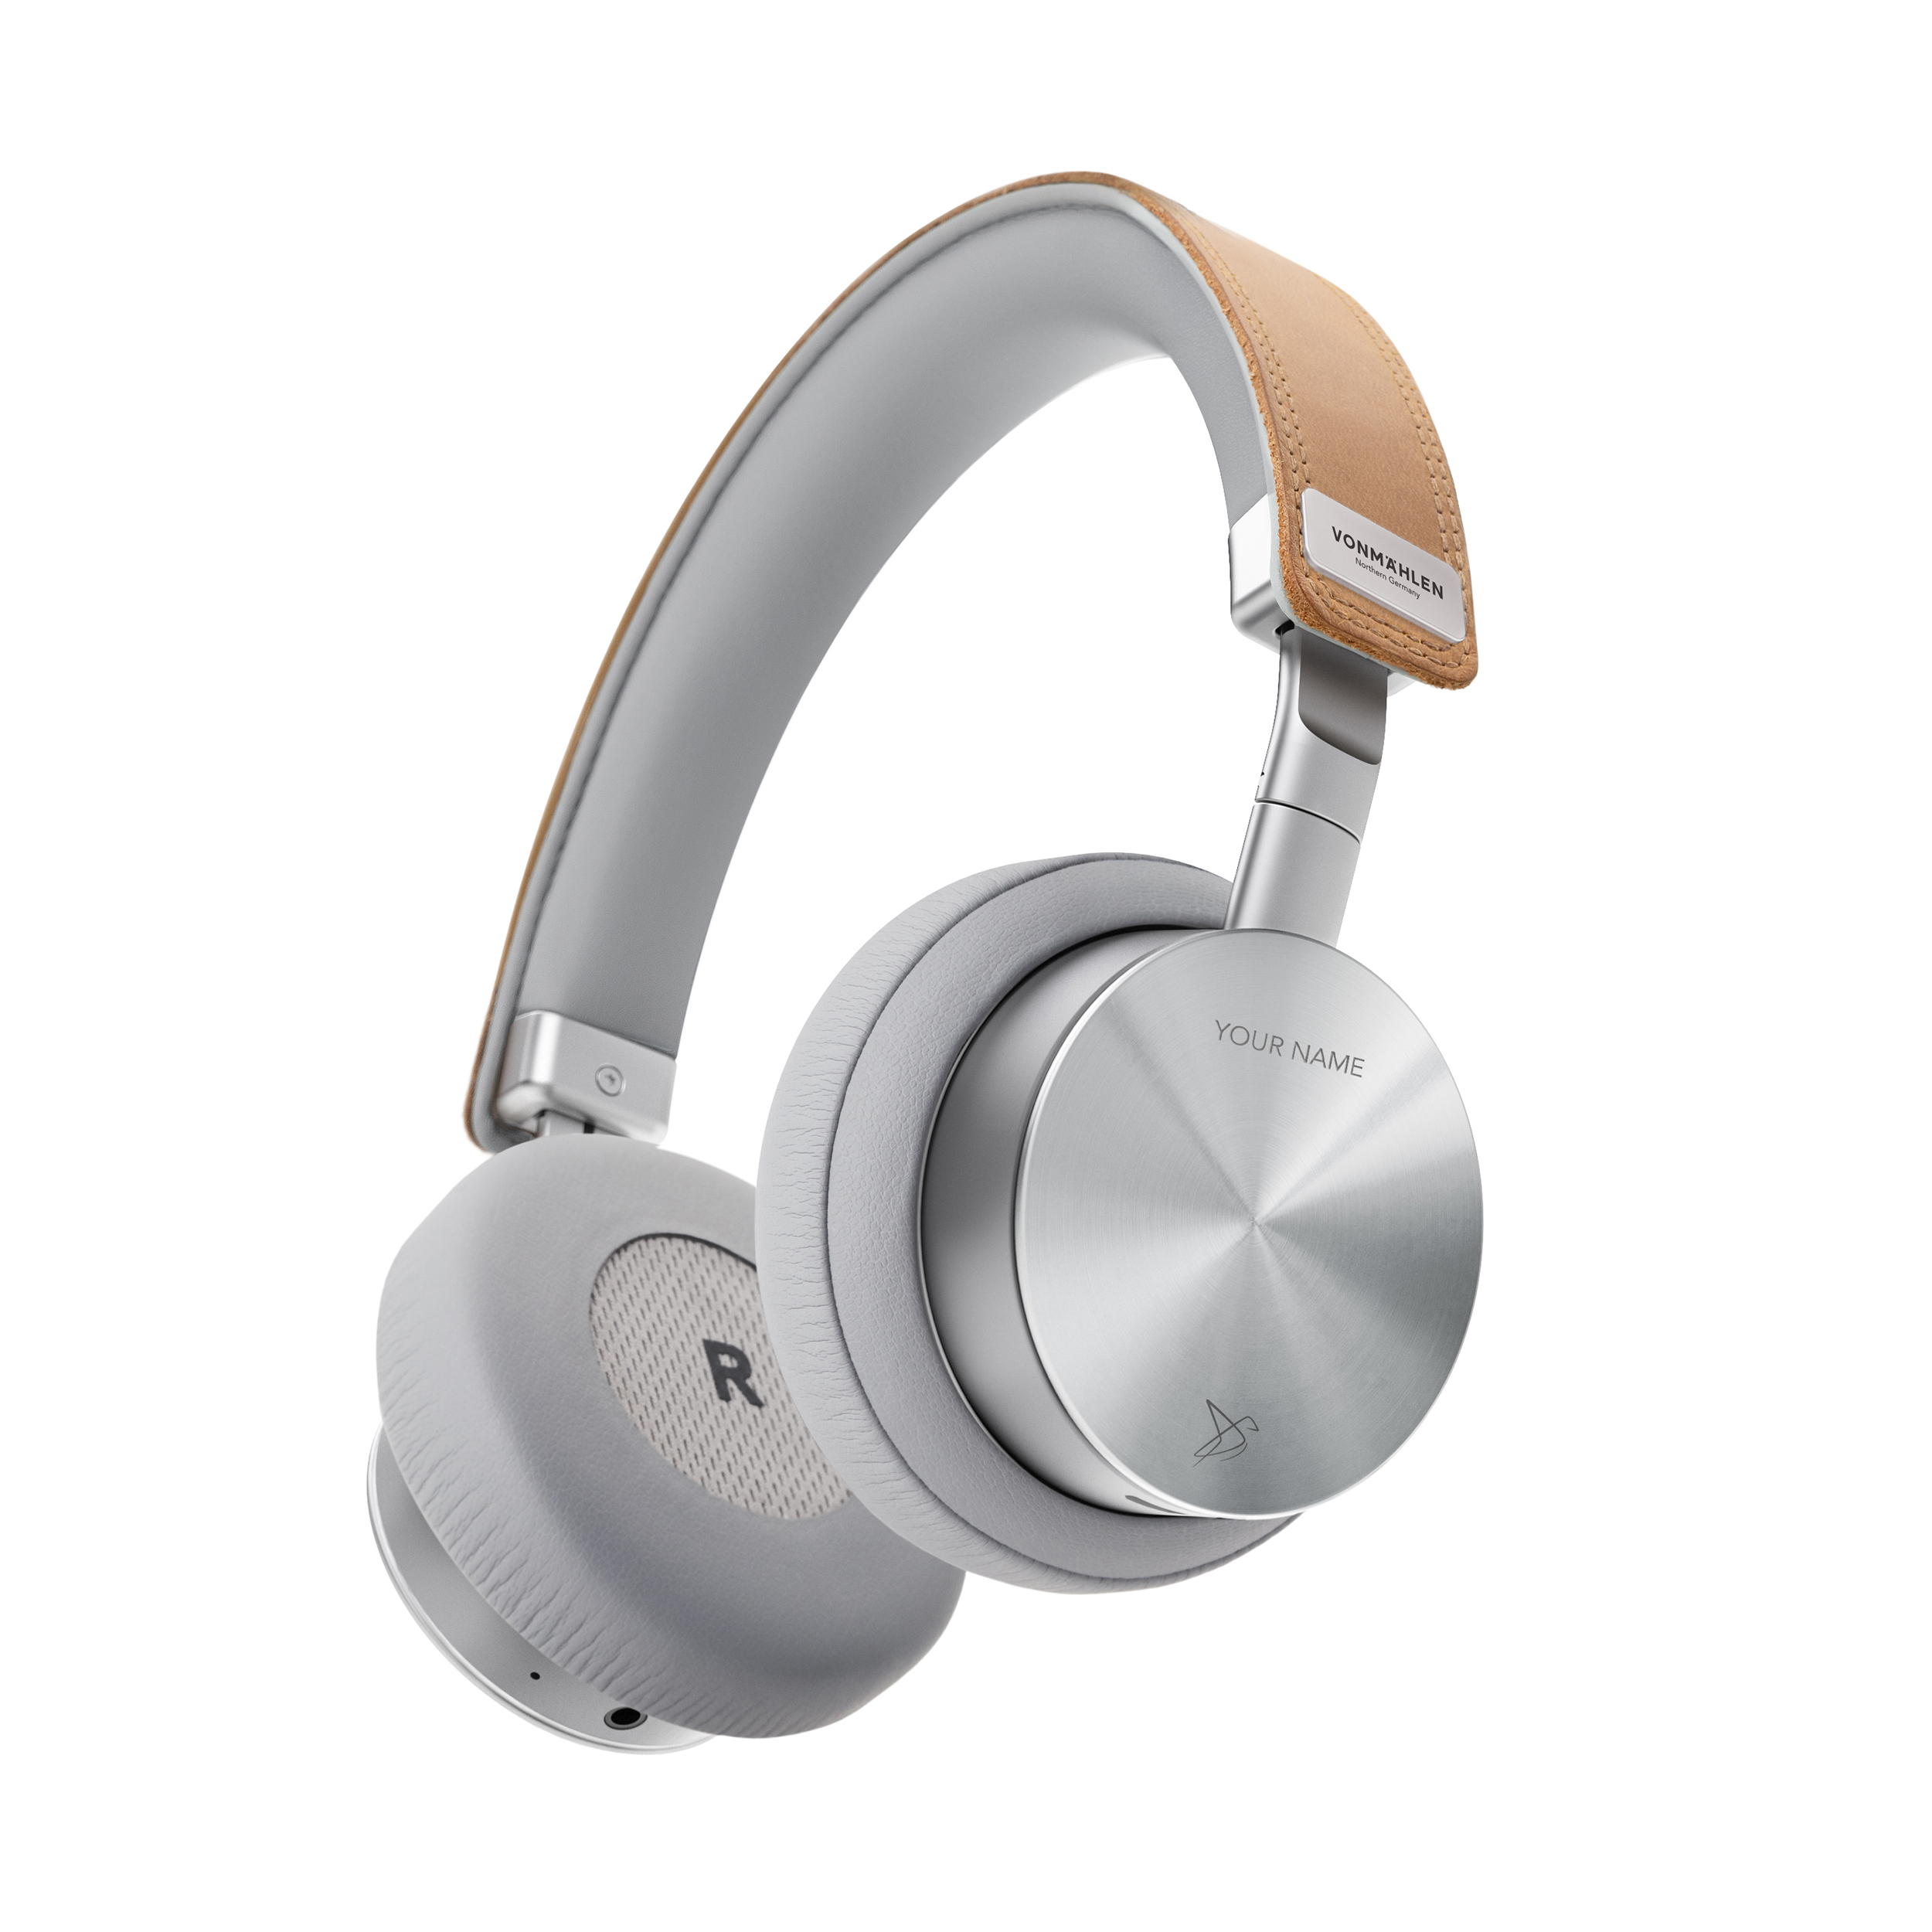 Wireless Concert One - The Bluetooth On-Ear Headphones